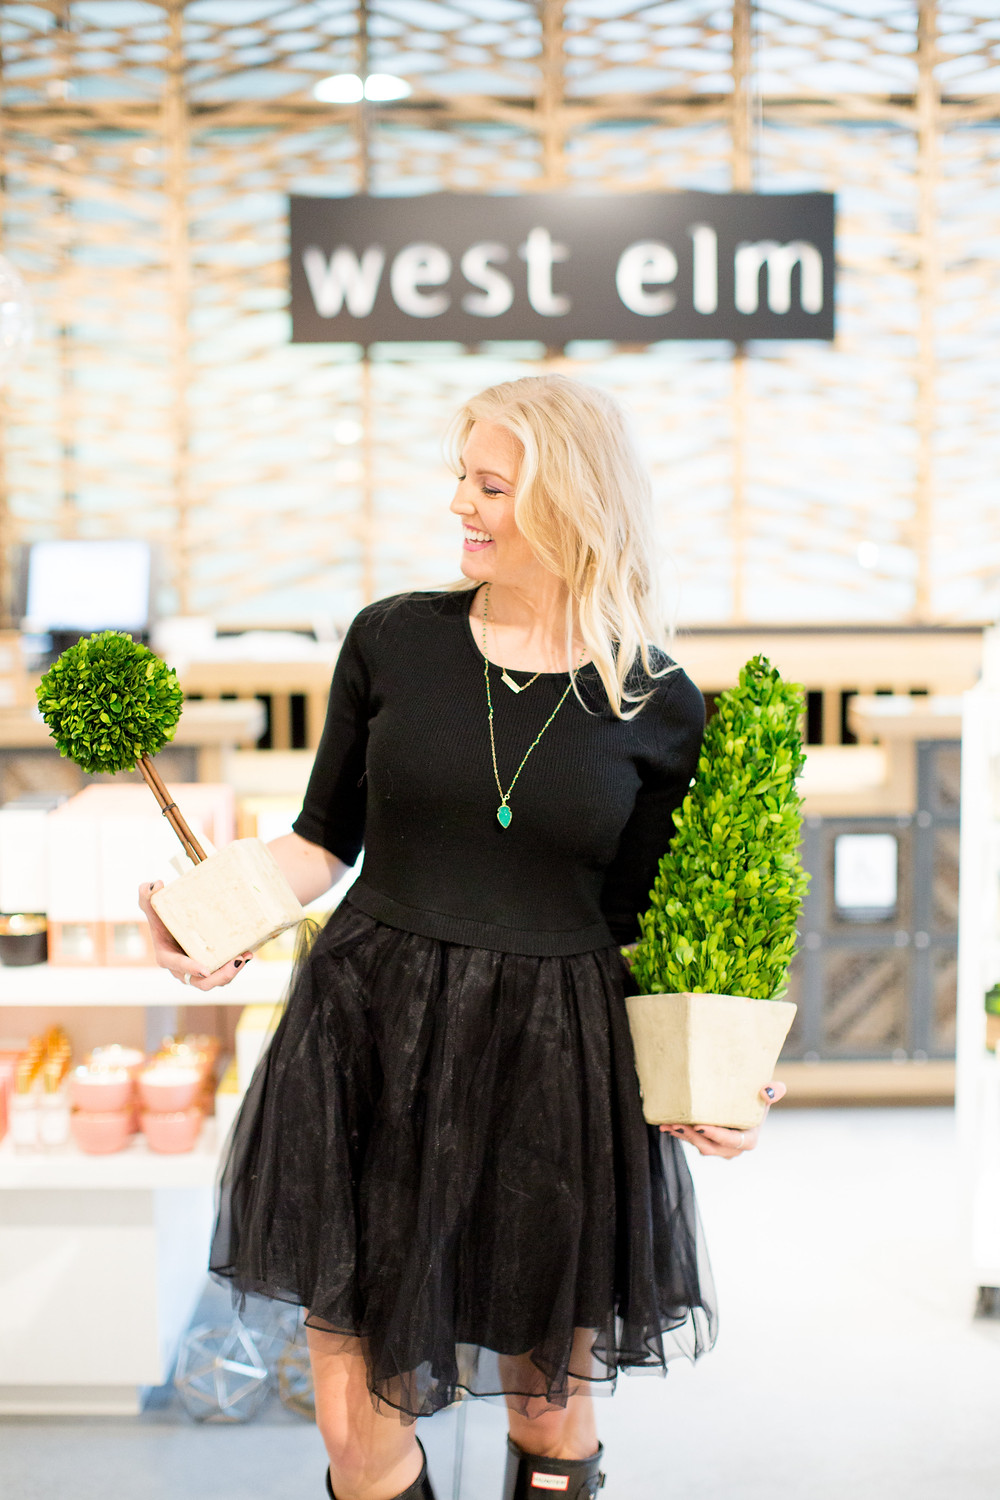 West Elm,Town Center, Mother's Day Gift Guide, Blissfully Boyce